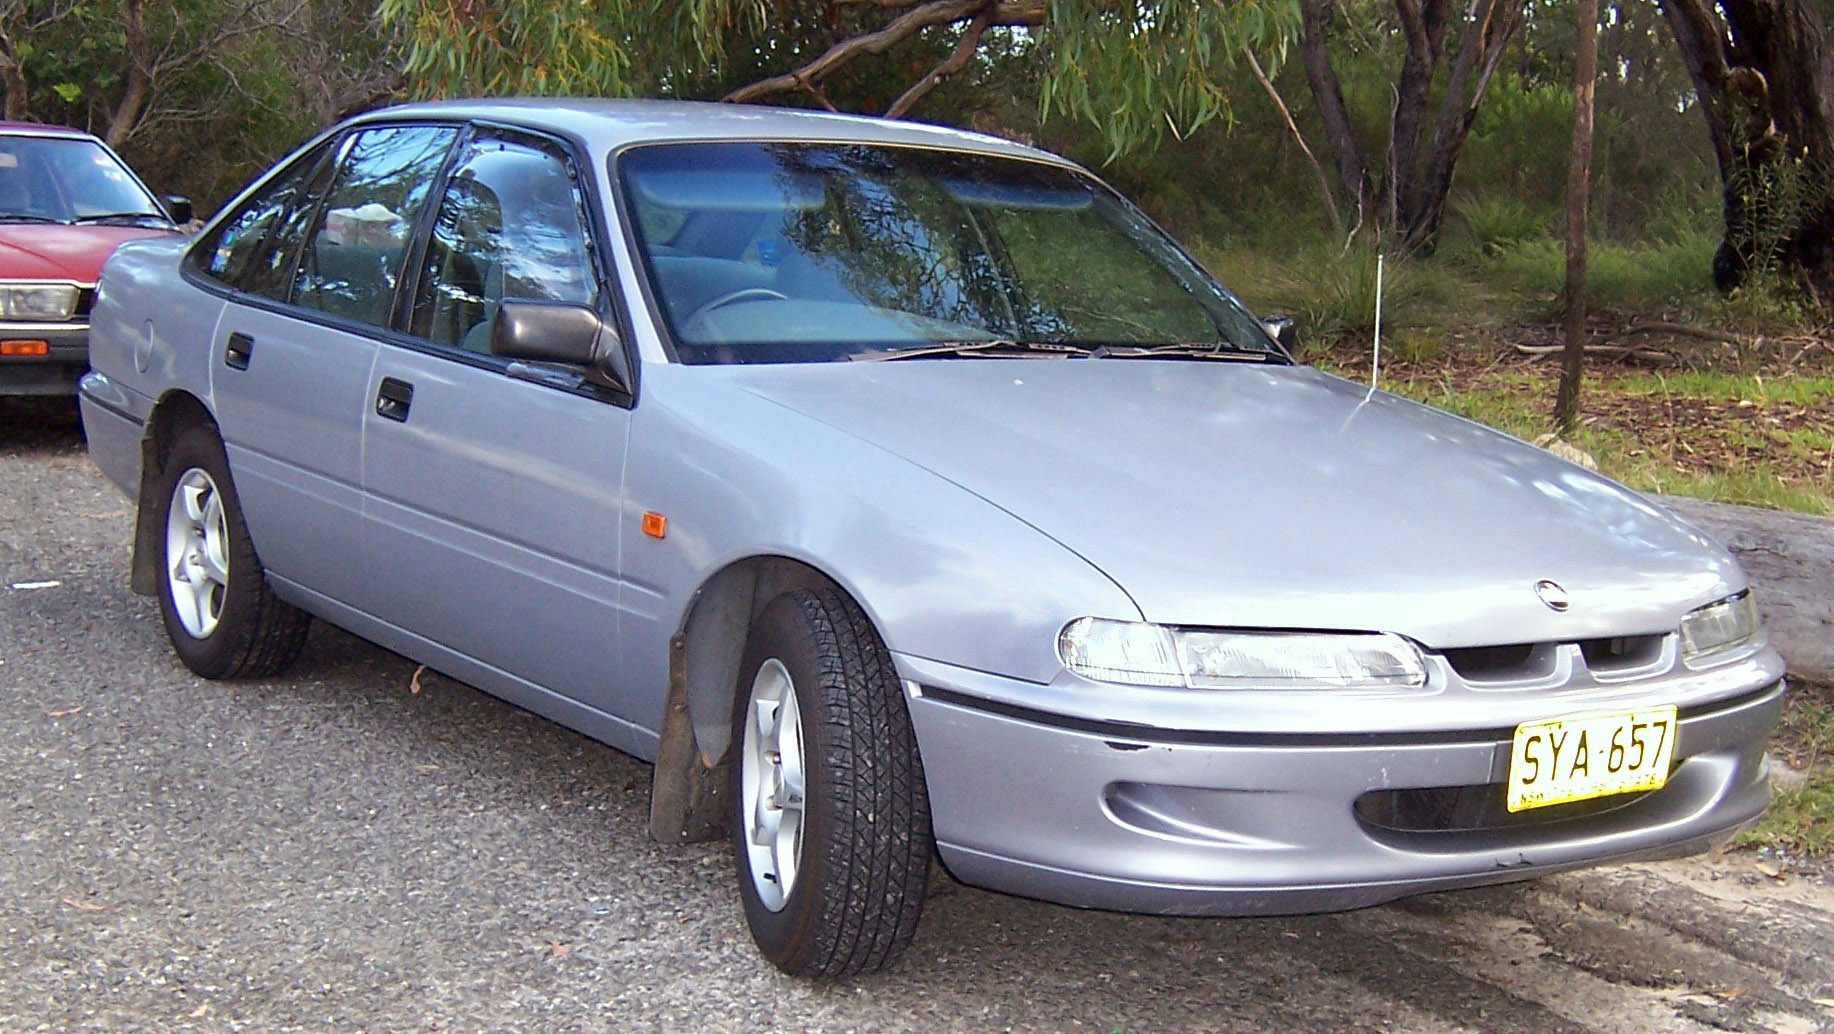 holden caprice 1994 images #8